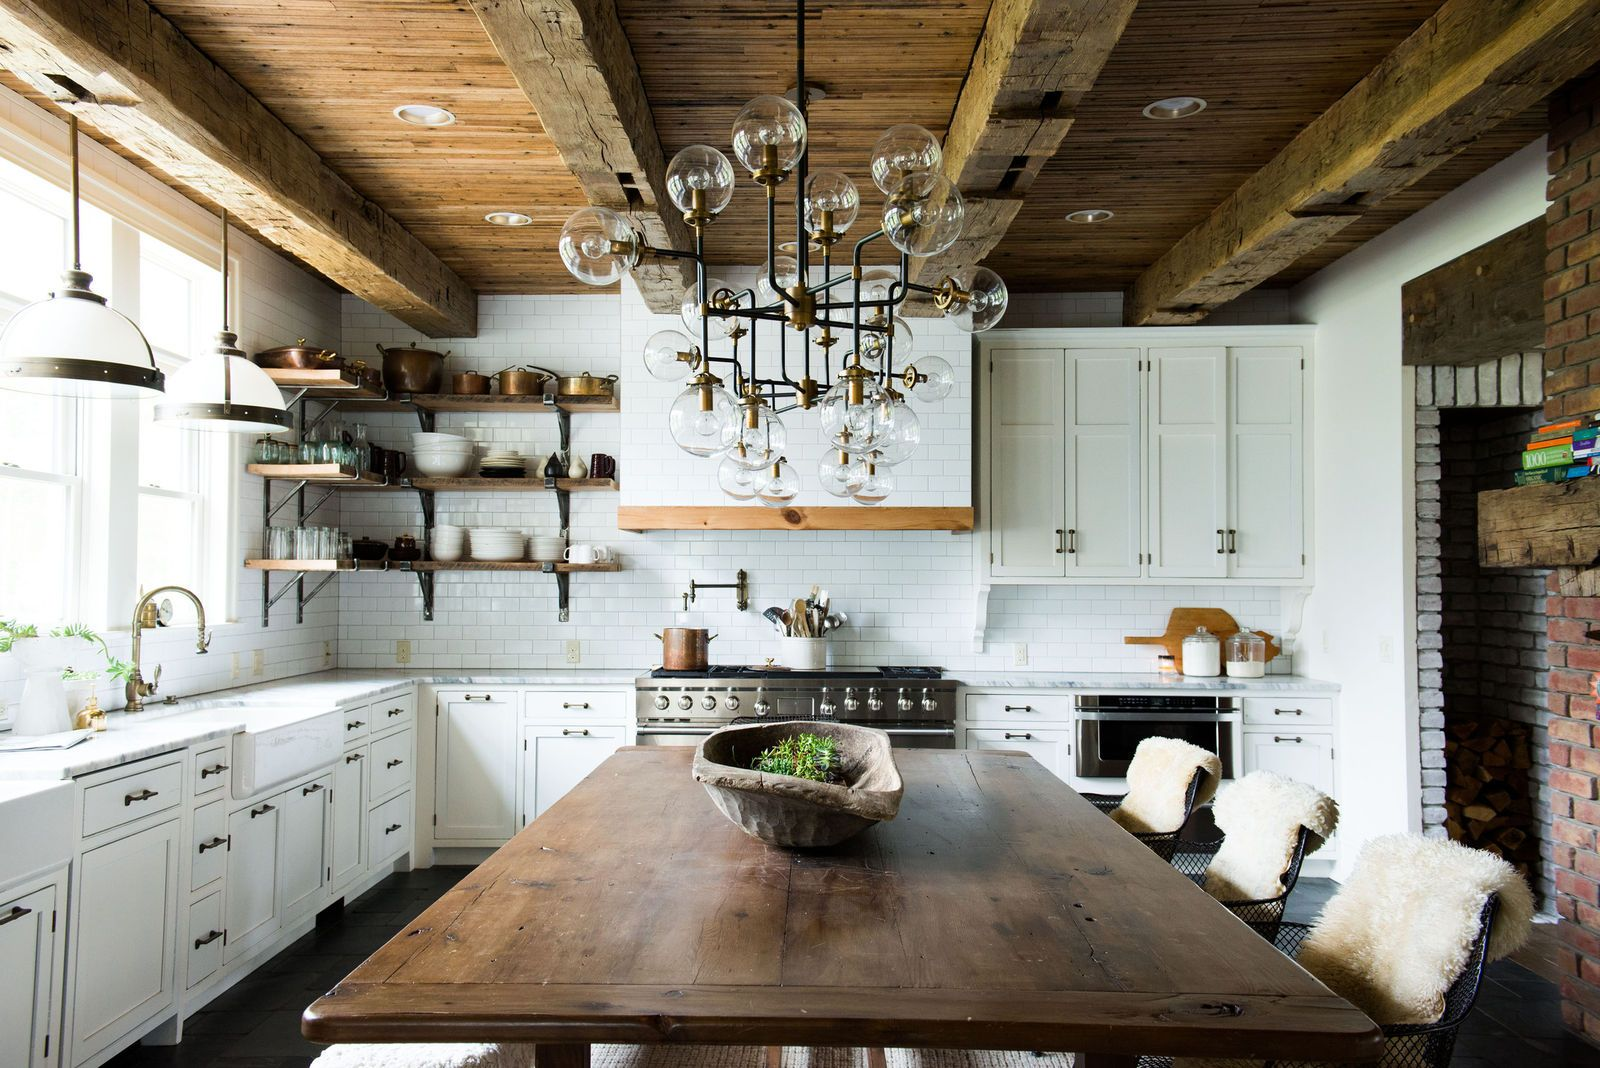 The Top Kitchen Design Ideas For 2017 Hgtv Leanne Ford Interview Delish Com